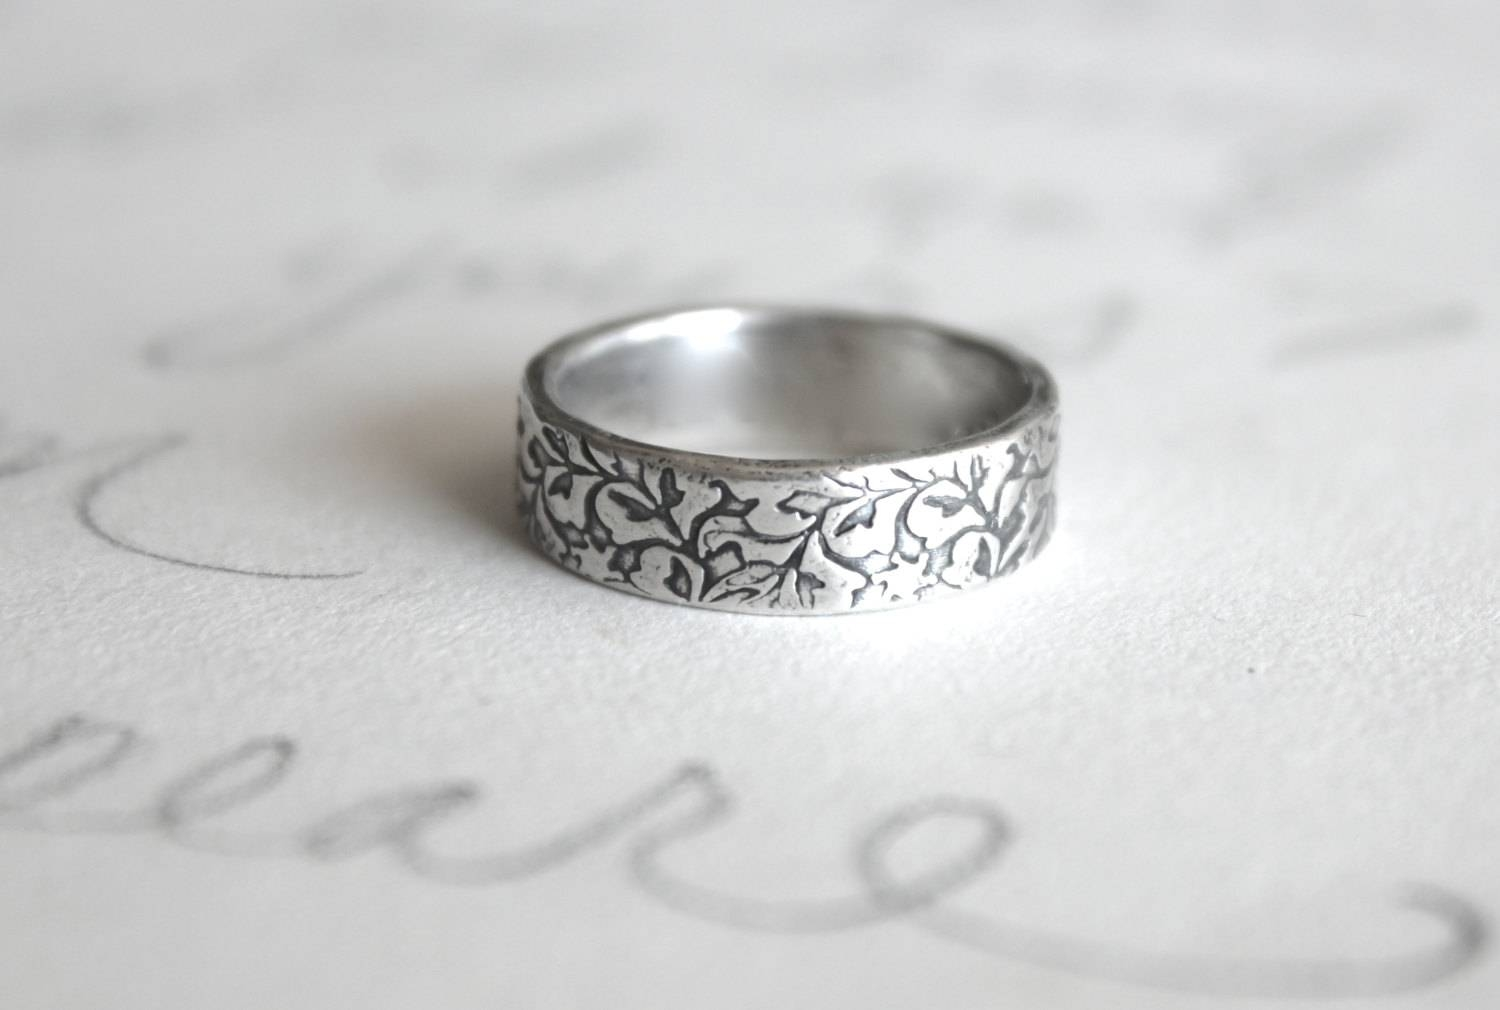 Unisex Wedding Band Ring . Engraved Recycled Silver Ring  (View 12 of 15)